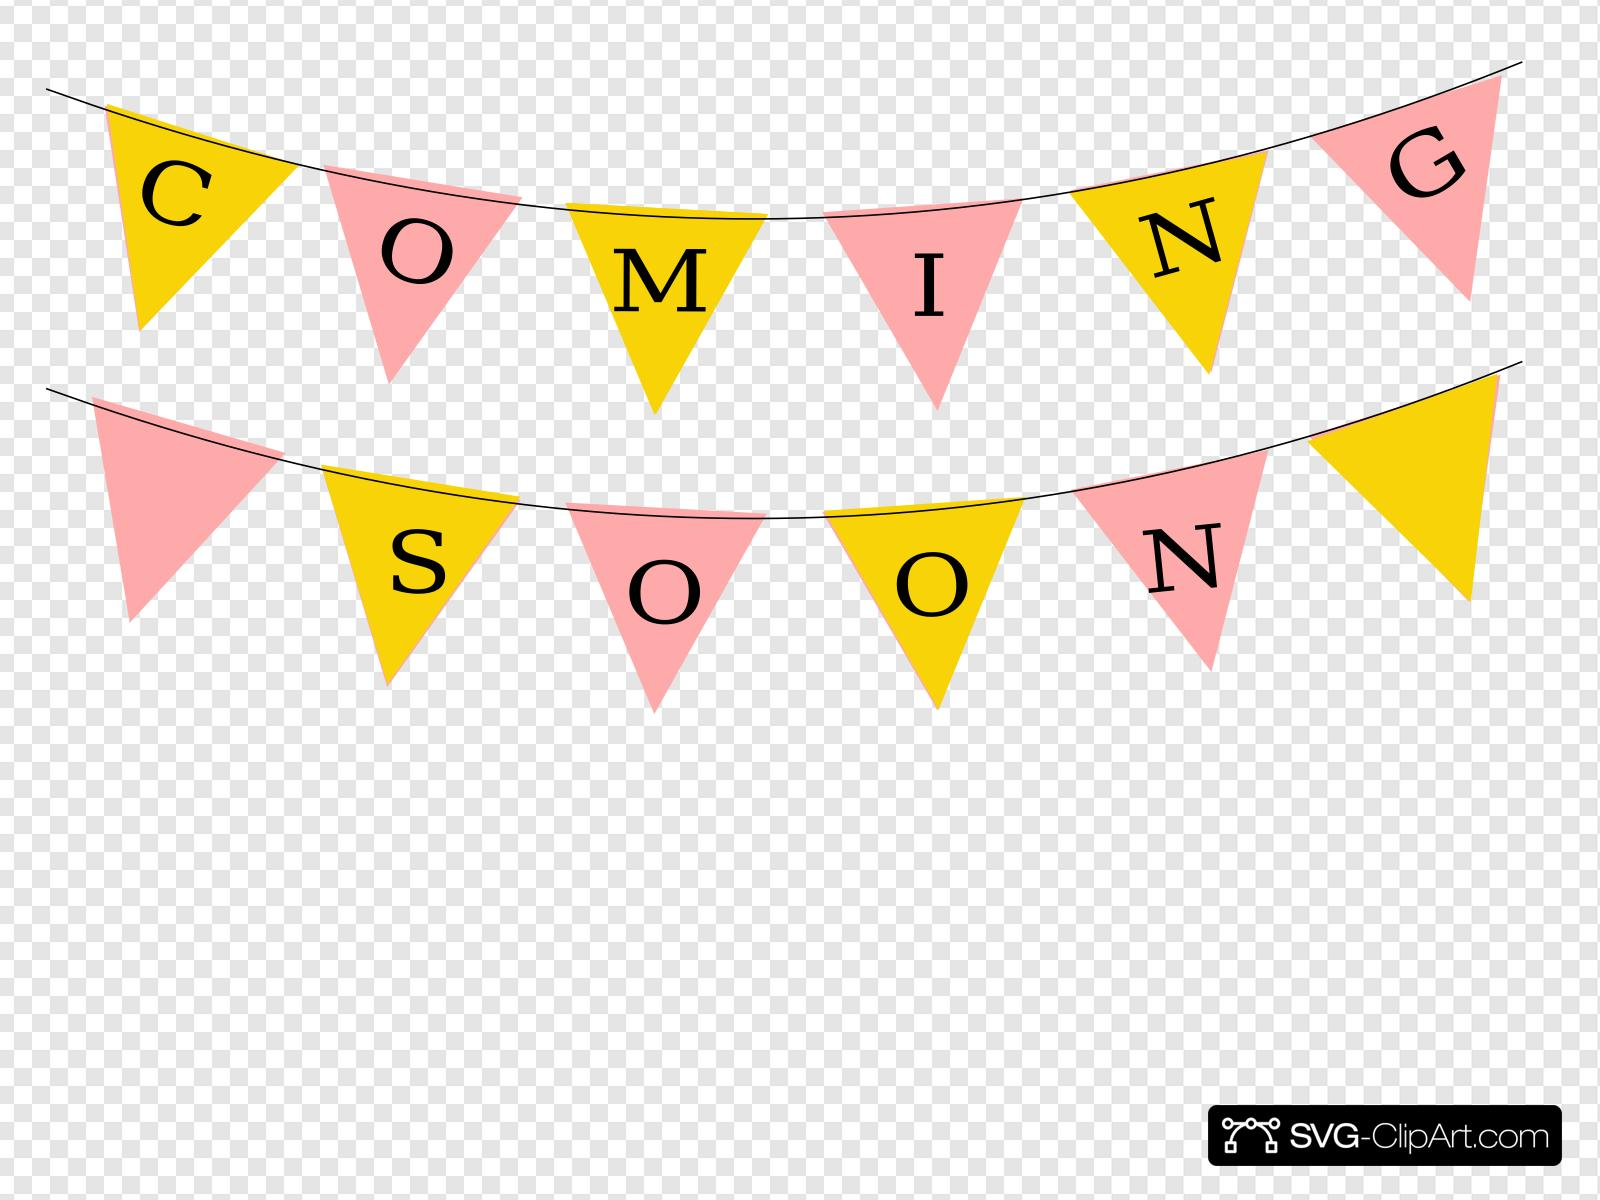 Coming Soon Clip art, Icon and SVG.